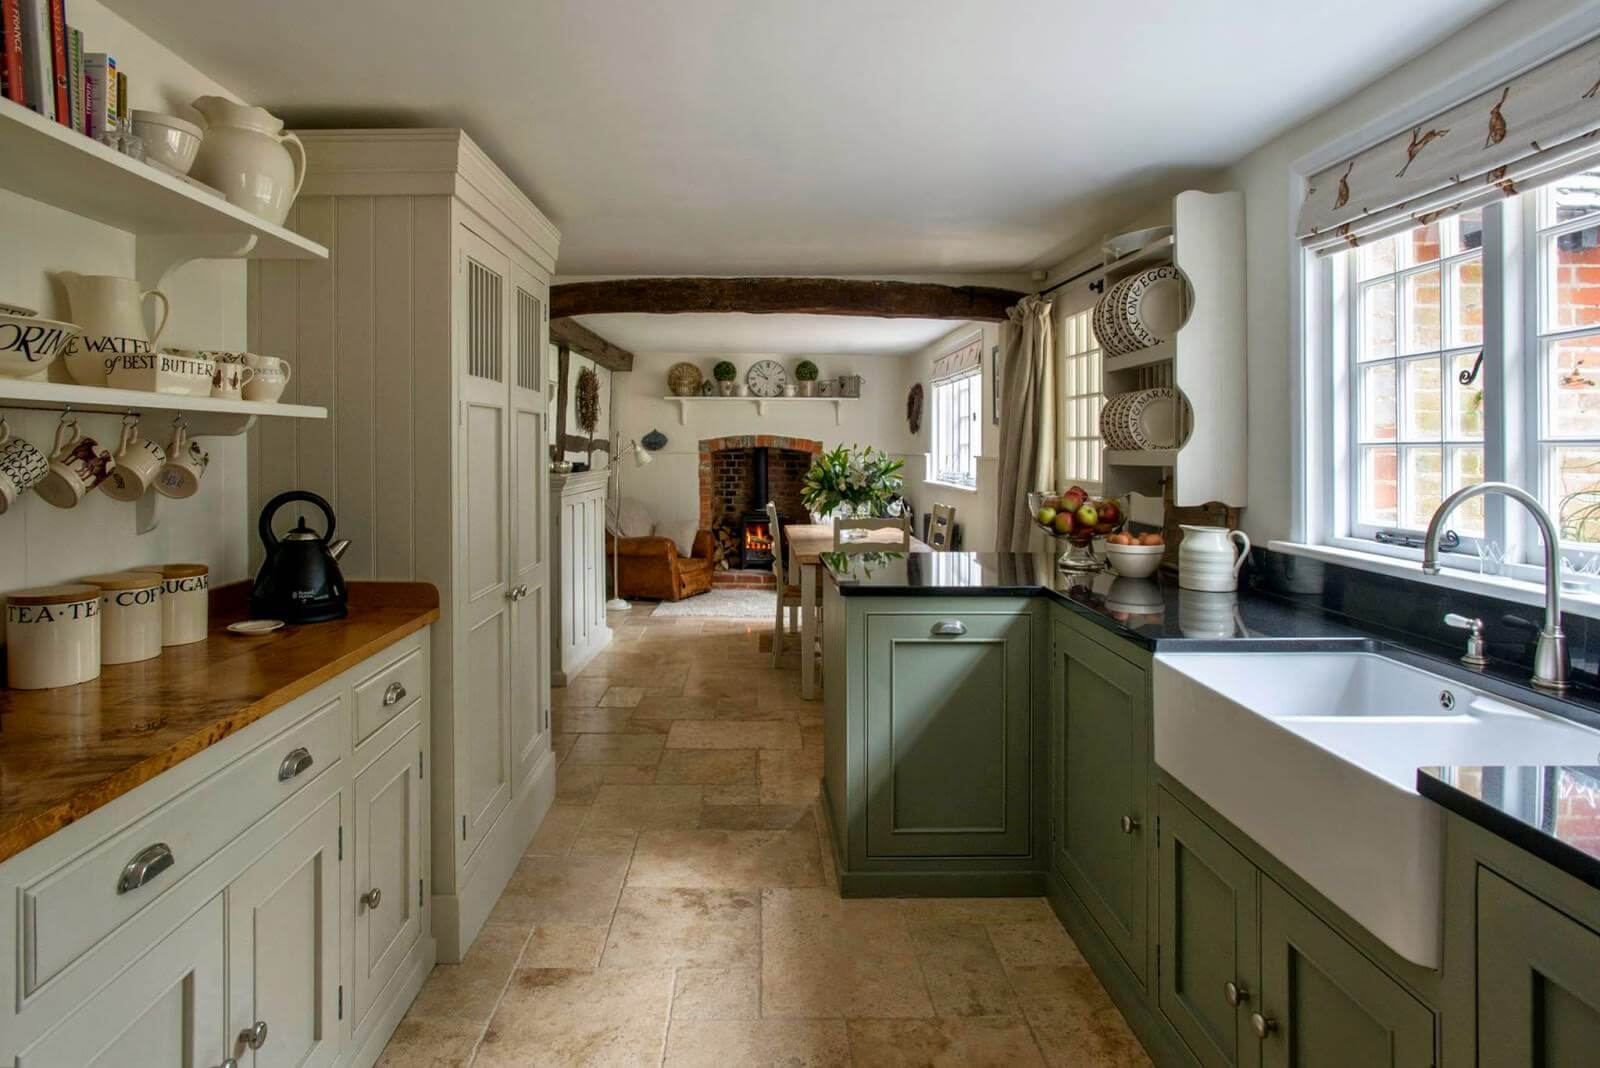 35 Best Farmhouse Kitchen Cabinet Ideas and Designs for 2020 on Farmhouse Kitchen Ideas  id=93714